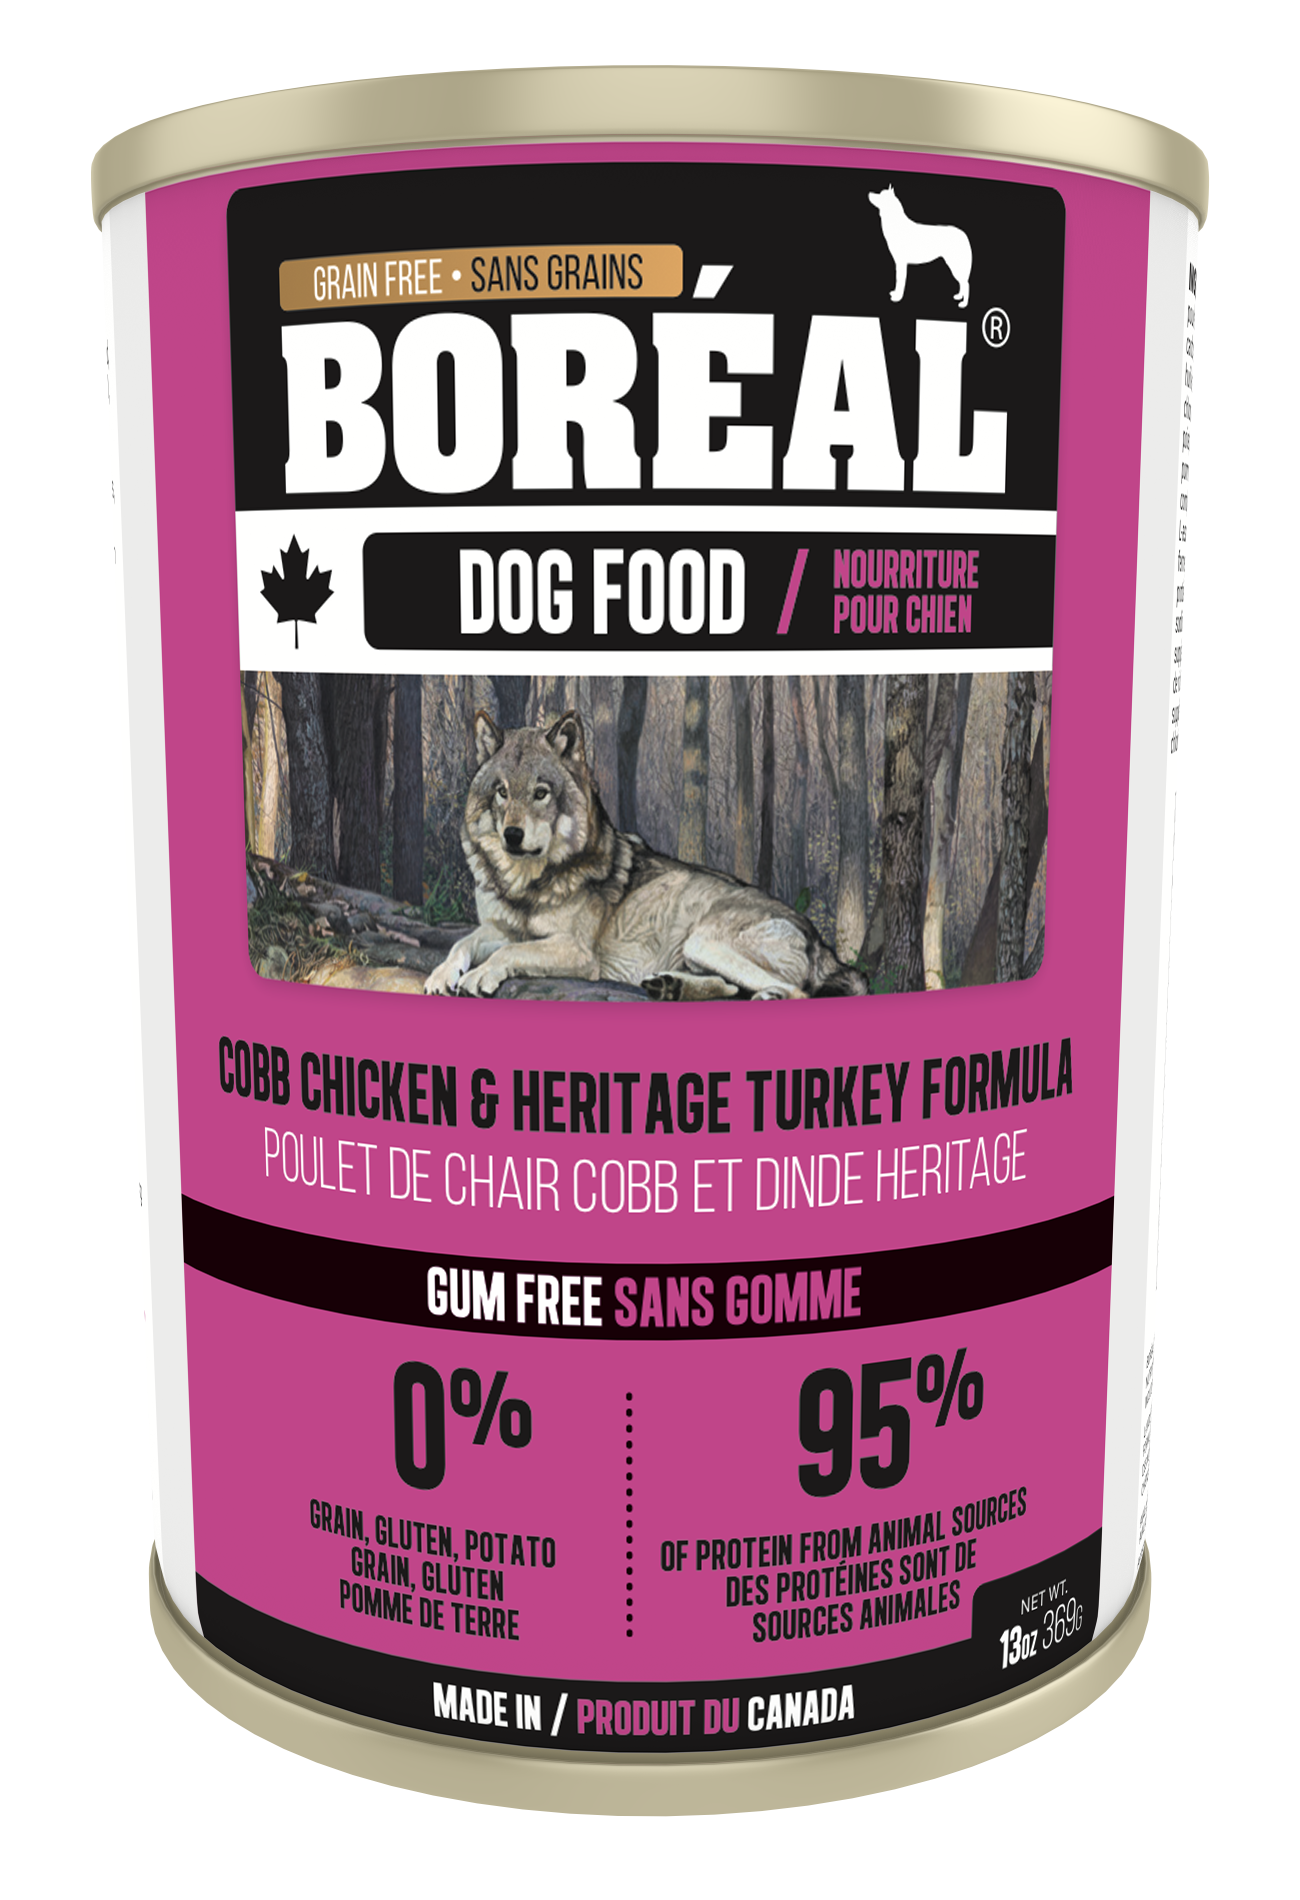 Boreal Grain-Free Canadian Cobb Chicken and Heritage Turkey Canned Dog Food, 369g can Size: 369g can